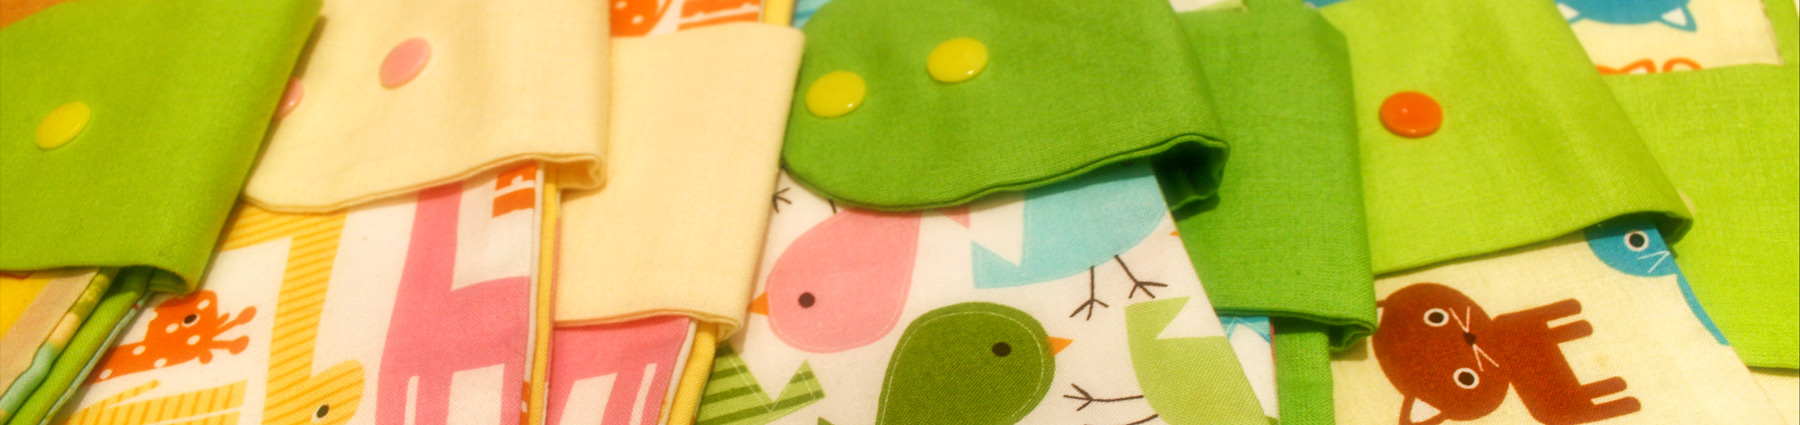 ZenZee Shop: A vision to raise our children in a natural way. Teethers